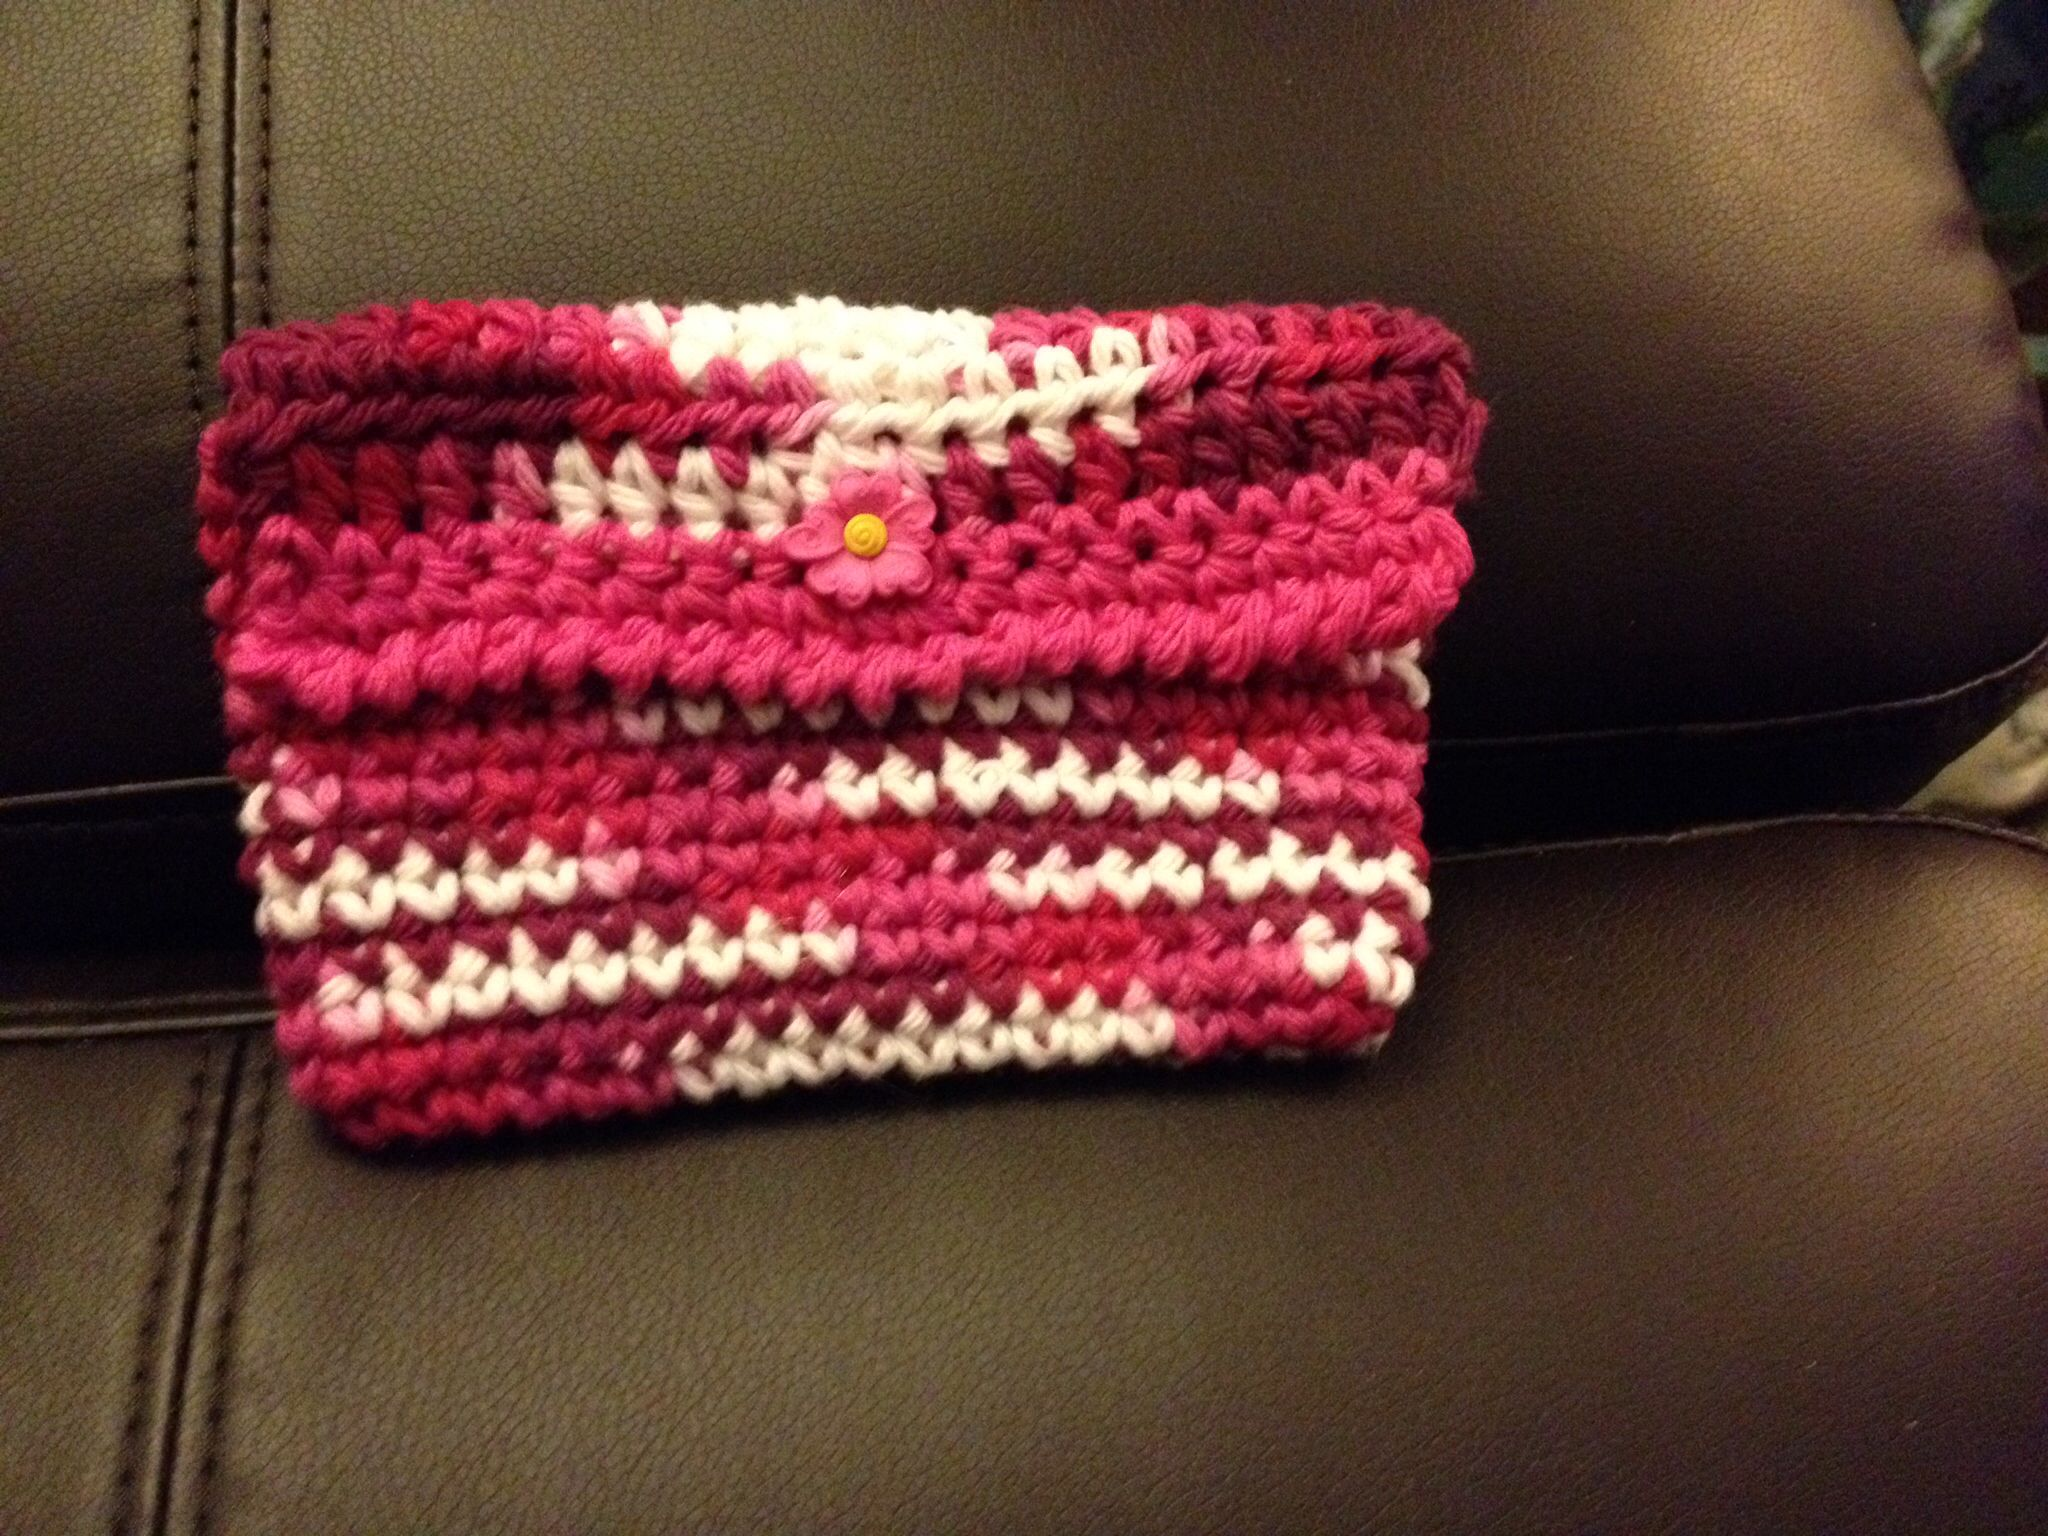 Crochet Cosmetic Bag : Crochet clutch or cosmetic bag. TASSEN / BAGS (CROCHET) Pinterest